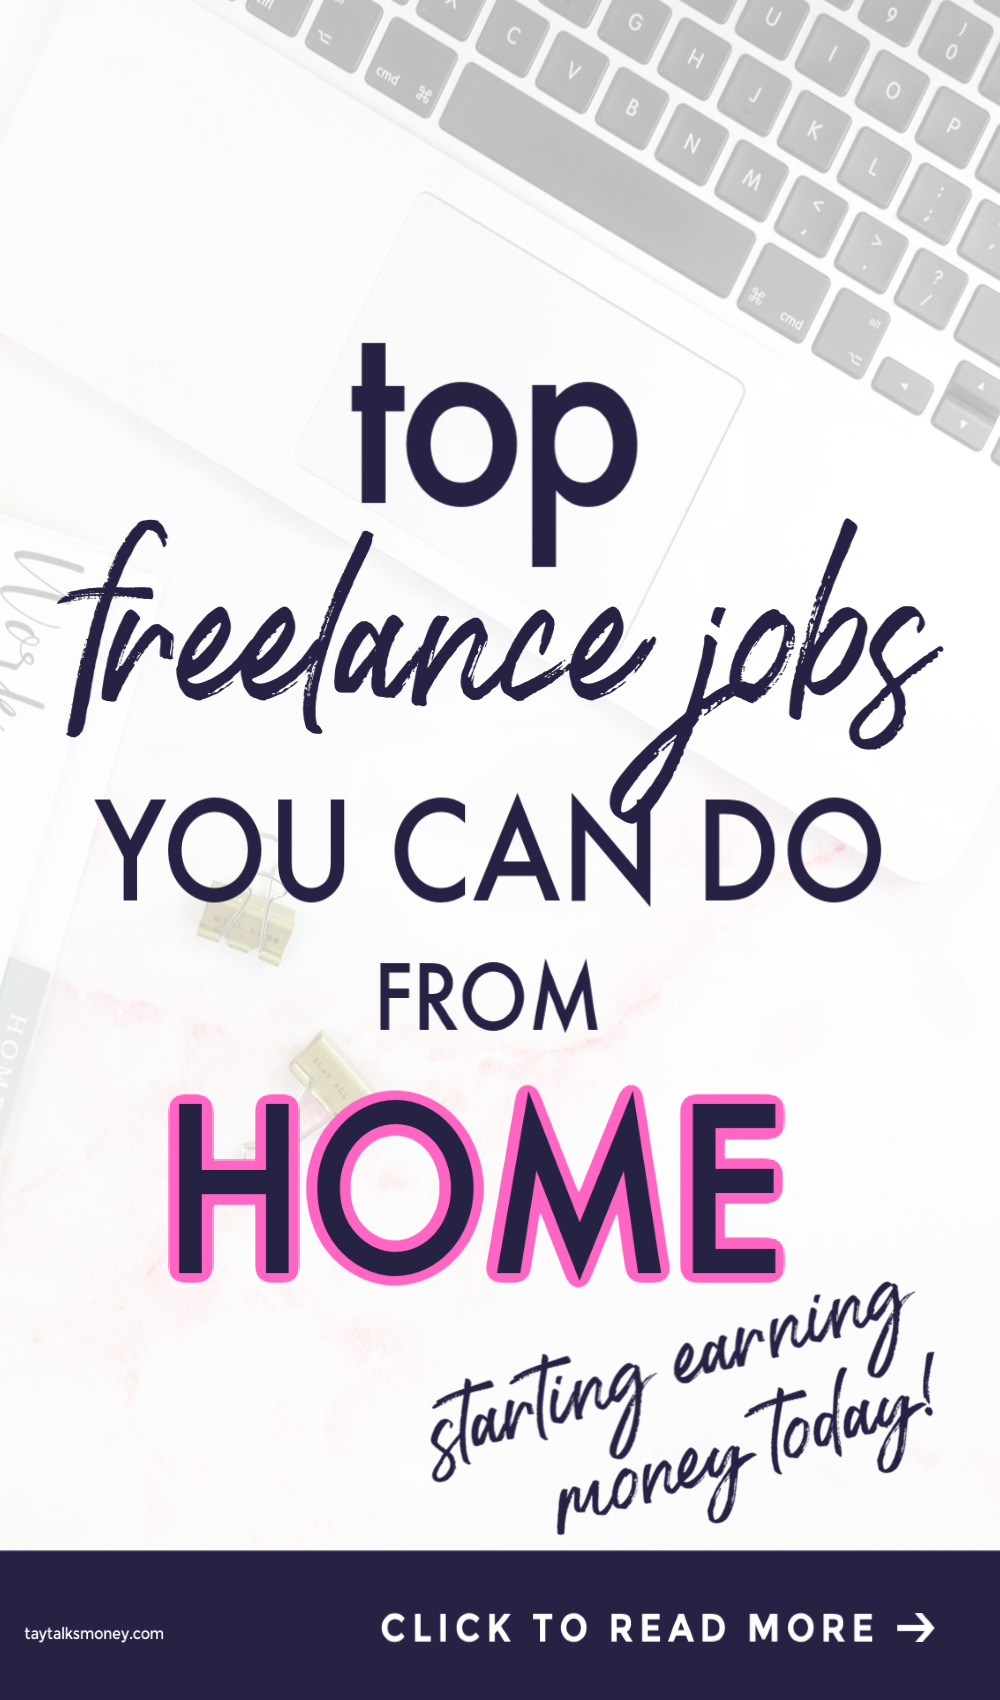 7 Freelance Jobs You Can Do From Home Taytalksmoney Money Lifestyle And Productivity In 2020 Freelancing Jobs Coding Tutorials Type Of Writing